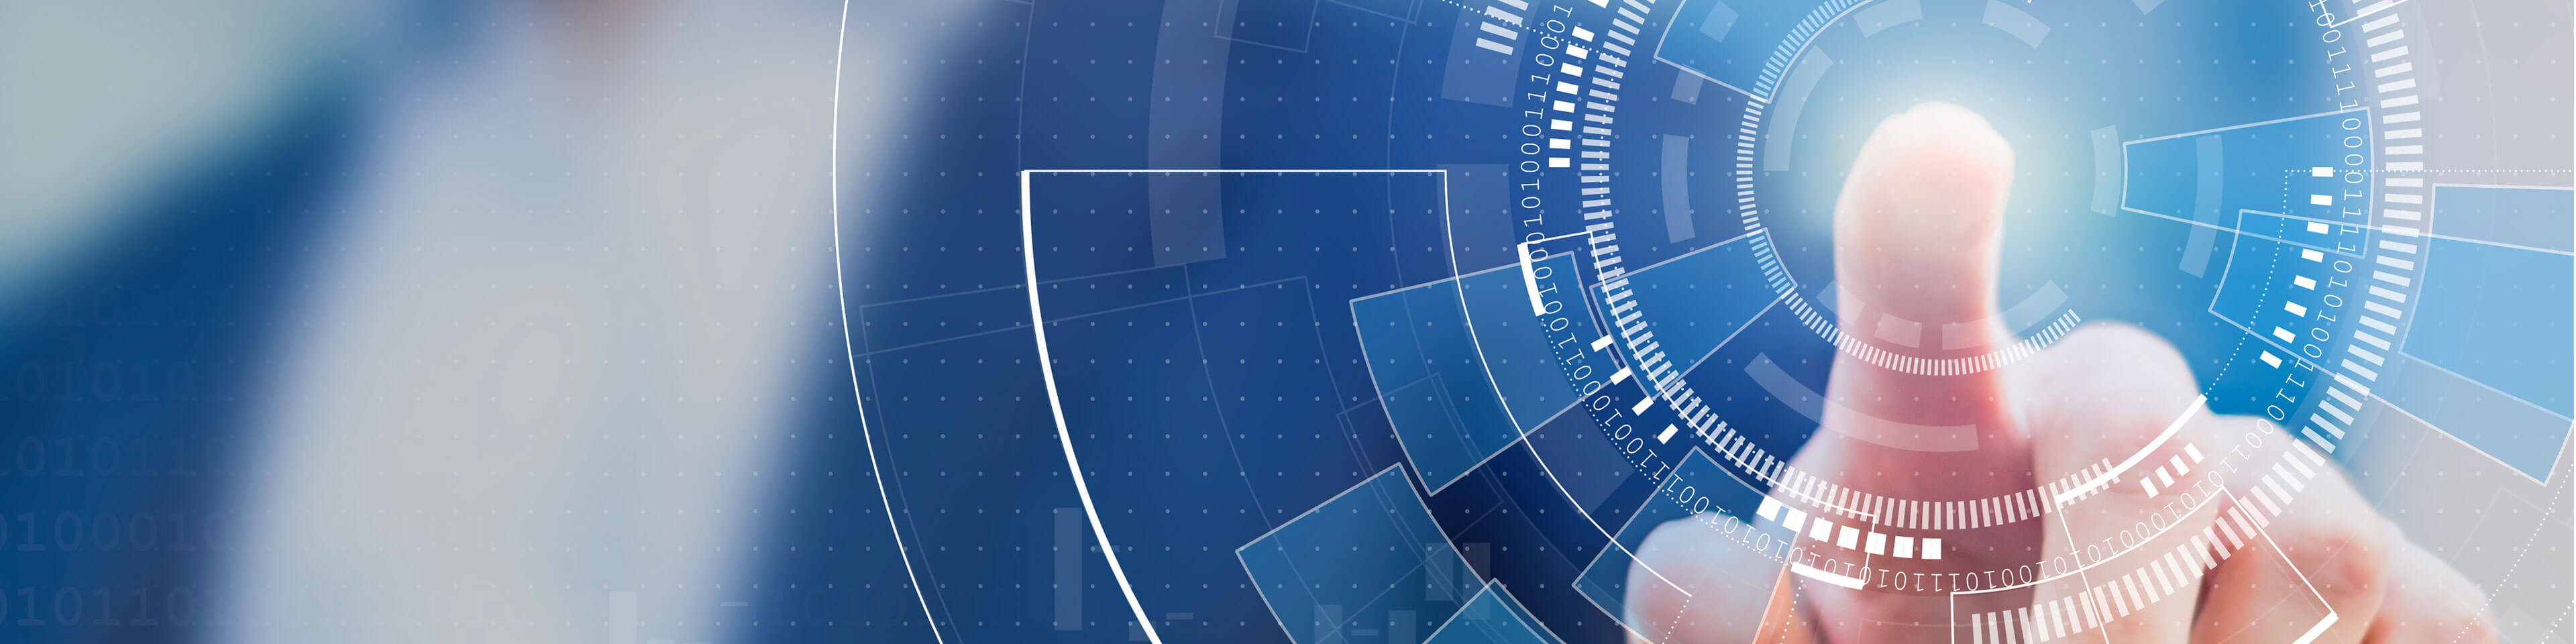 Unlock a lean and resilient Supply Chain: the value of Predictive Planning systems